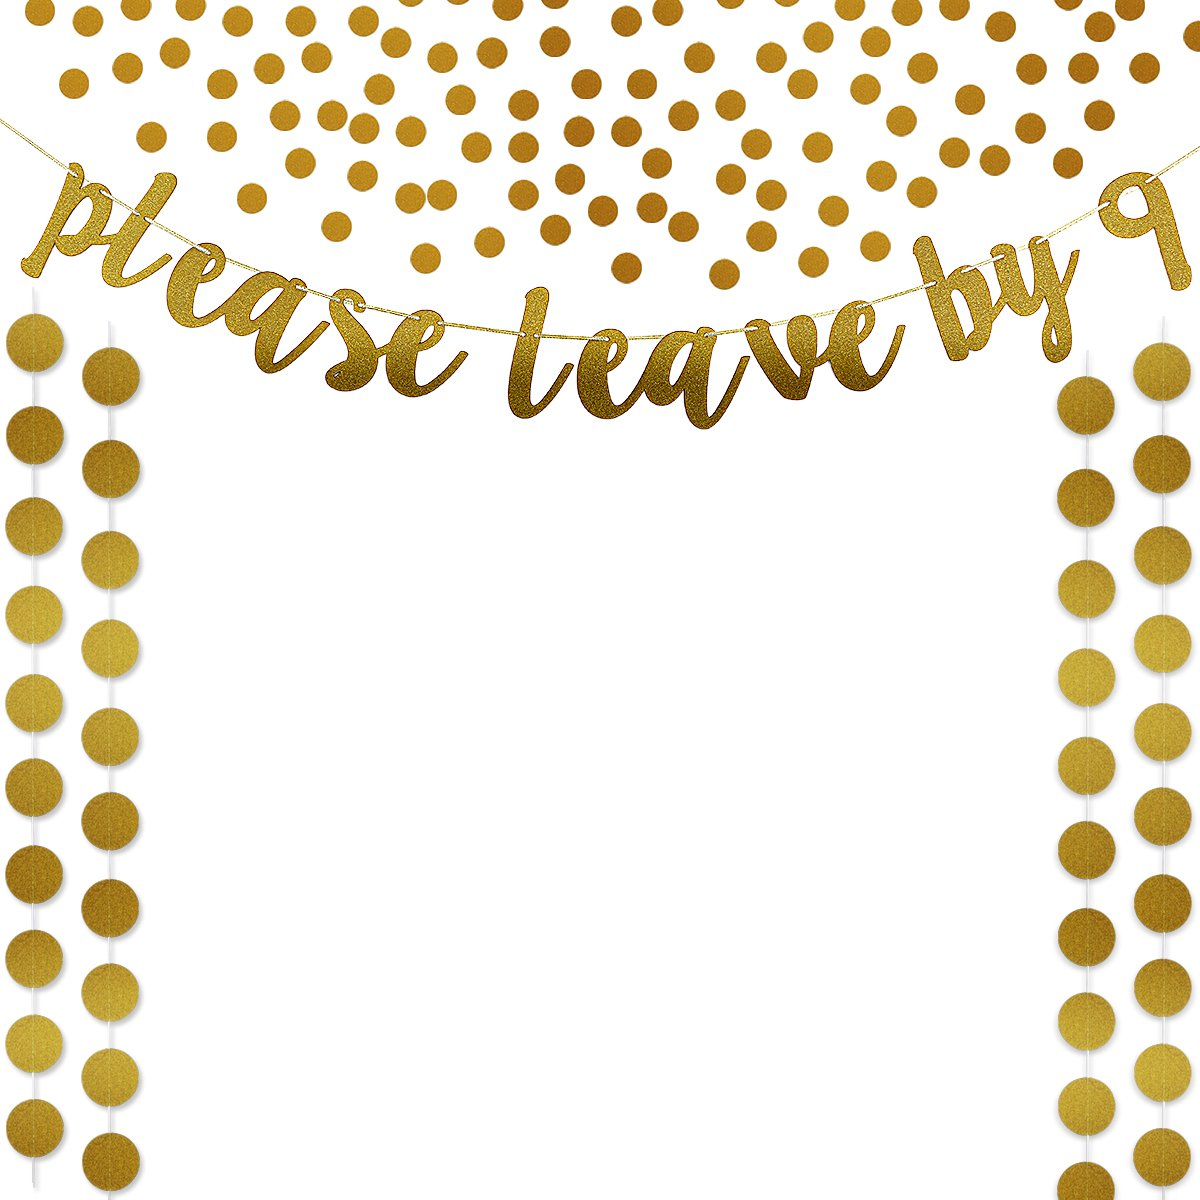 Gold Glittery Please Leave By 9 Banner,Gold Glittery Circle Dots Garland (25Pcs Circle Dots) and Gold Glittery Circle Dots Confetti for Bachelorette Wedding Party Decoration Supplies